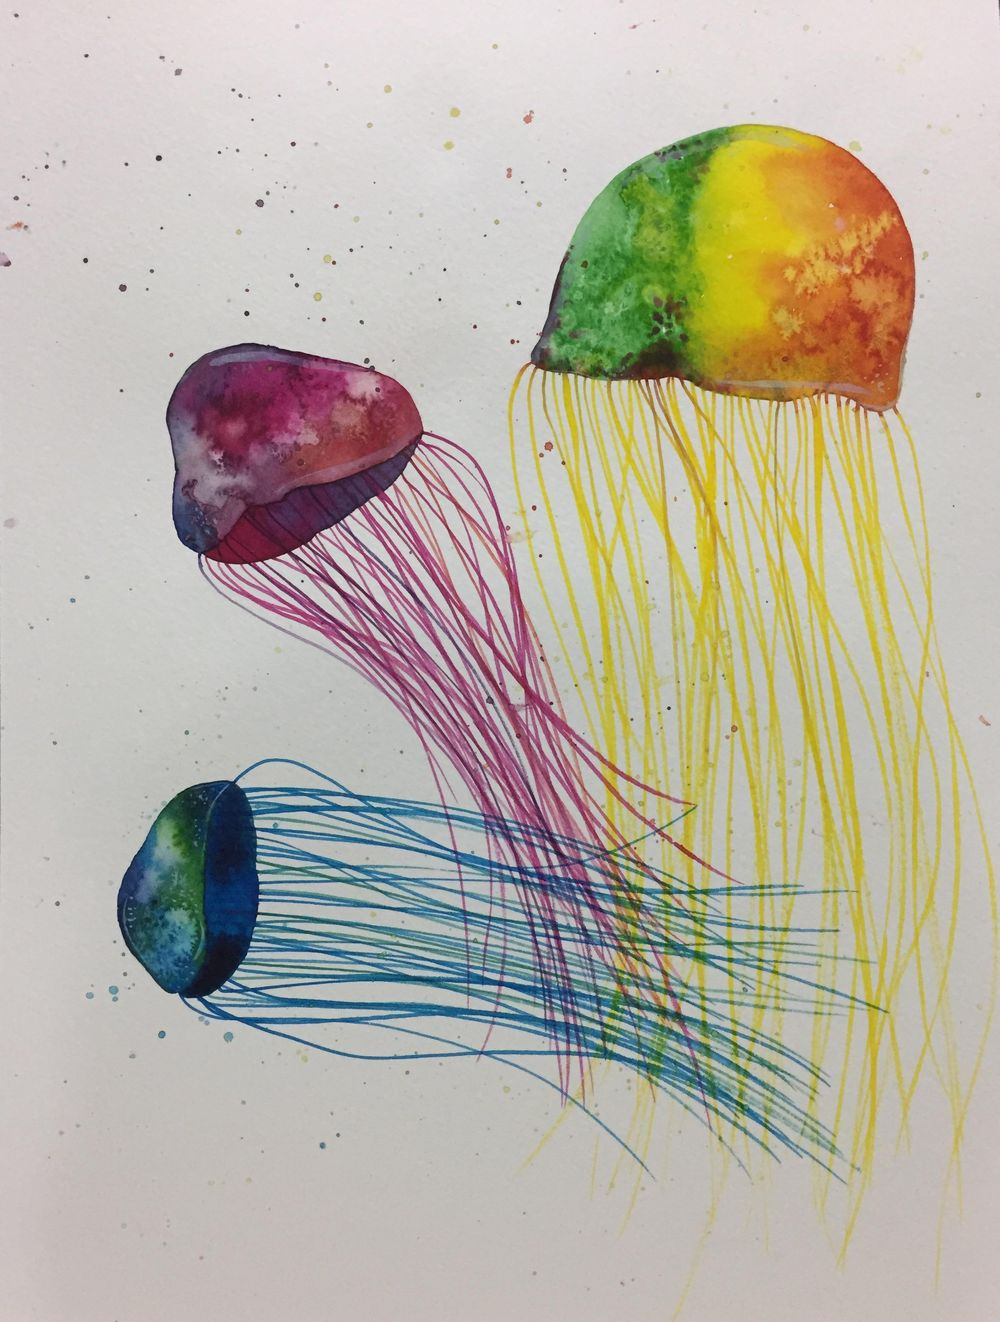 Monochrome mushrooms, Eletric jellyfishes and Galaxy - image 3 - student project